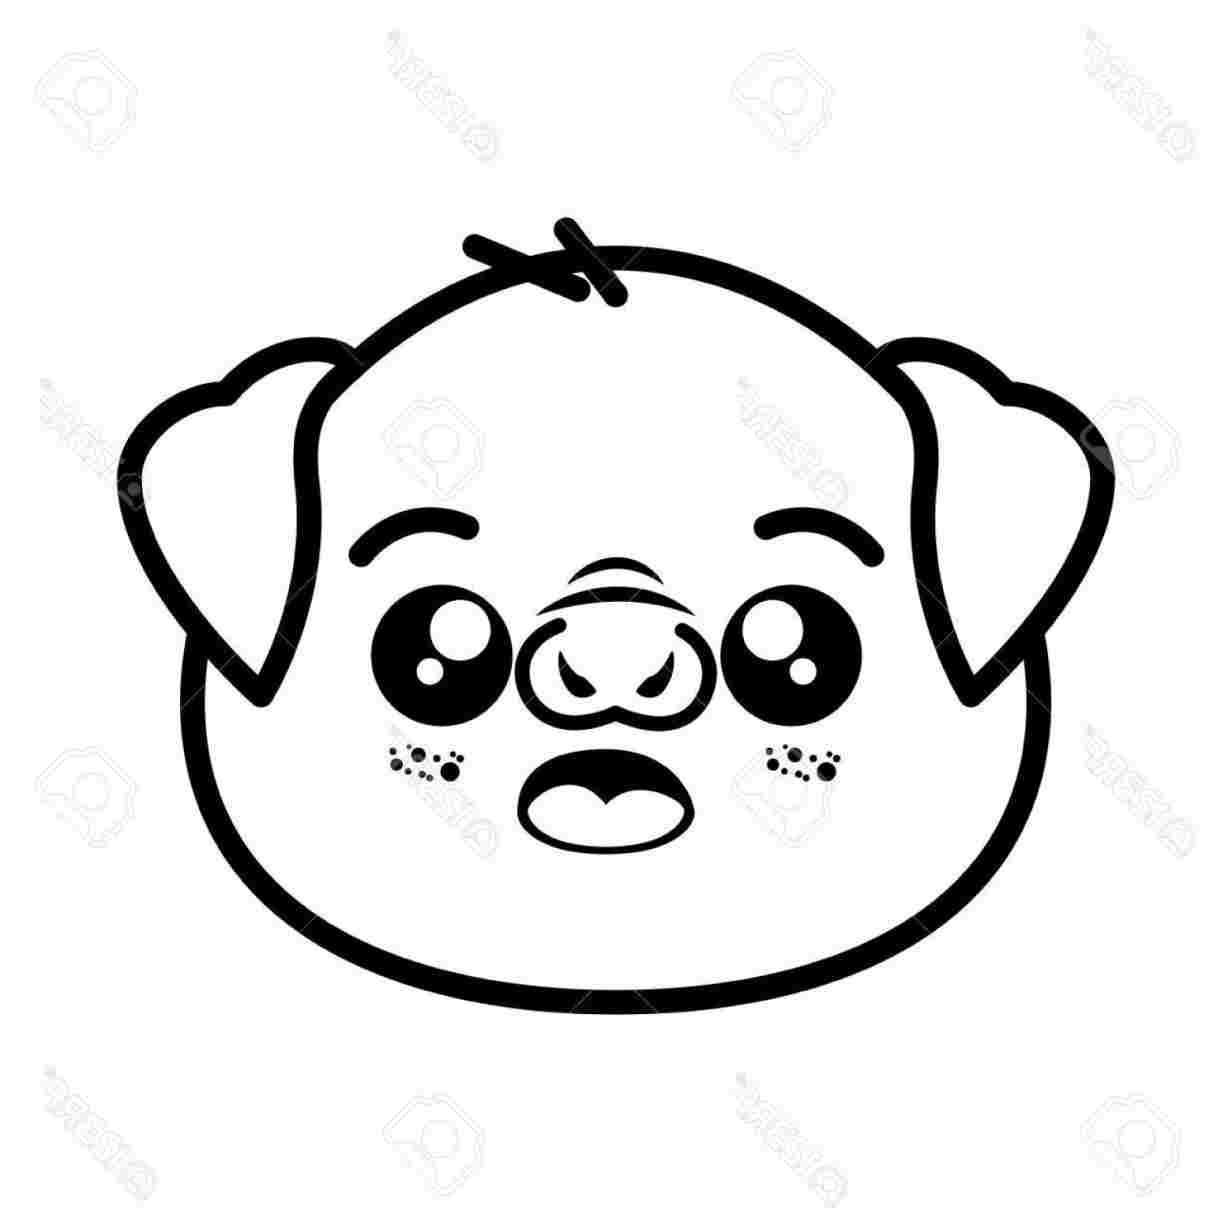 1232x1232 How To Draw A Cute Pig Face